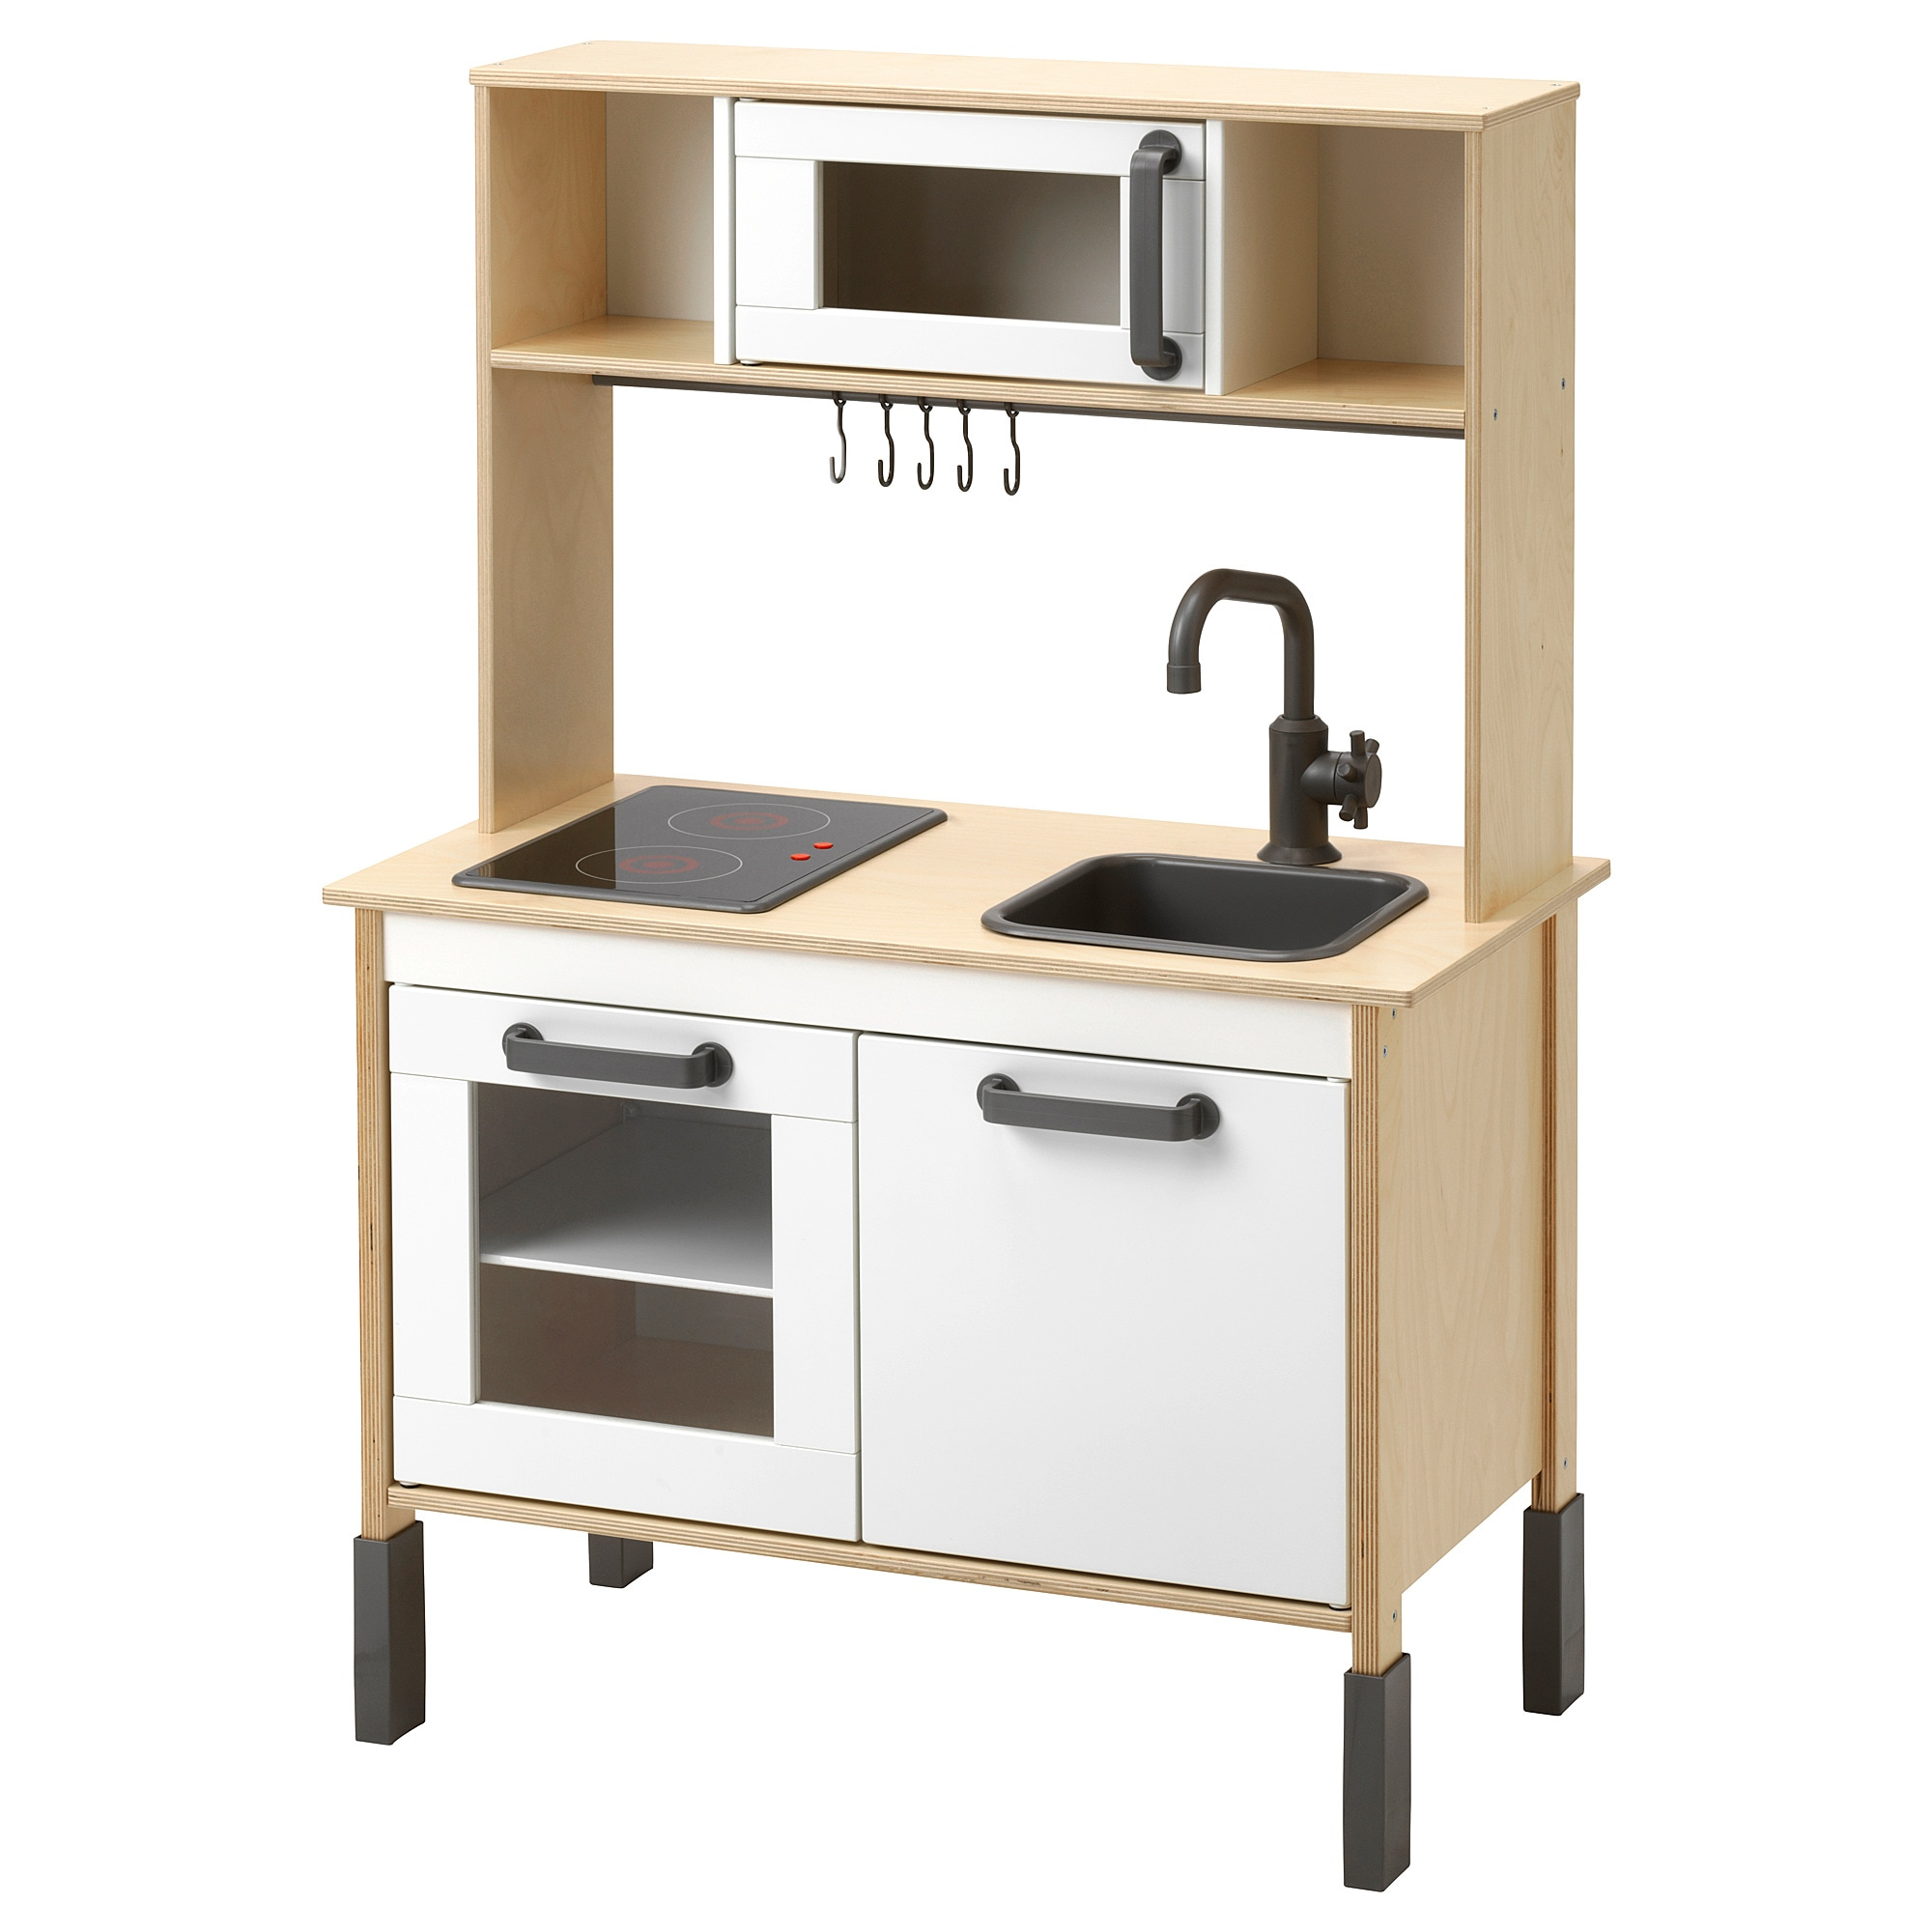 DUKTIG Play kitchen, birch